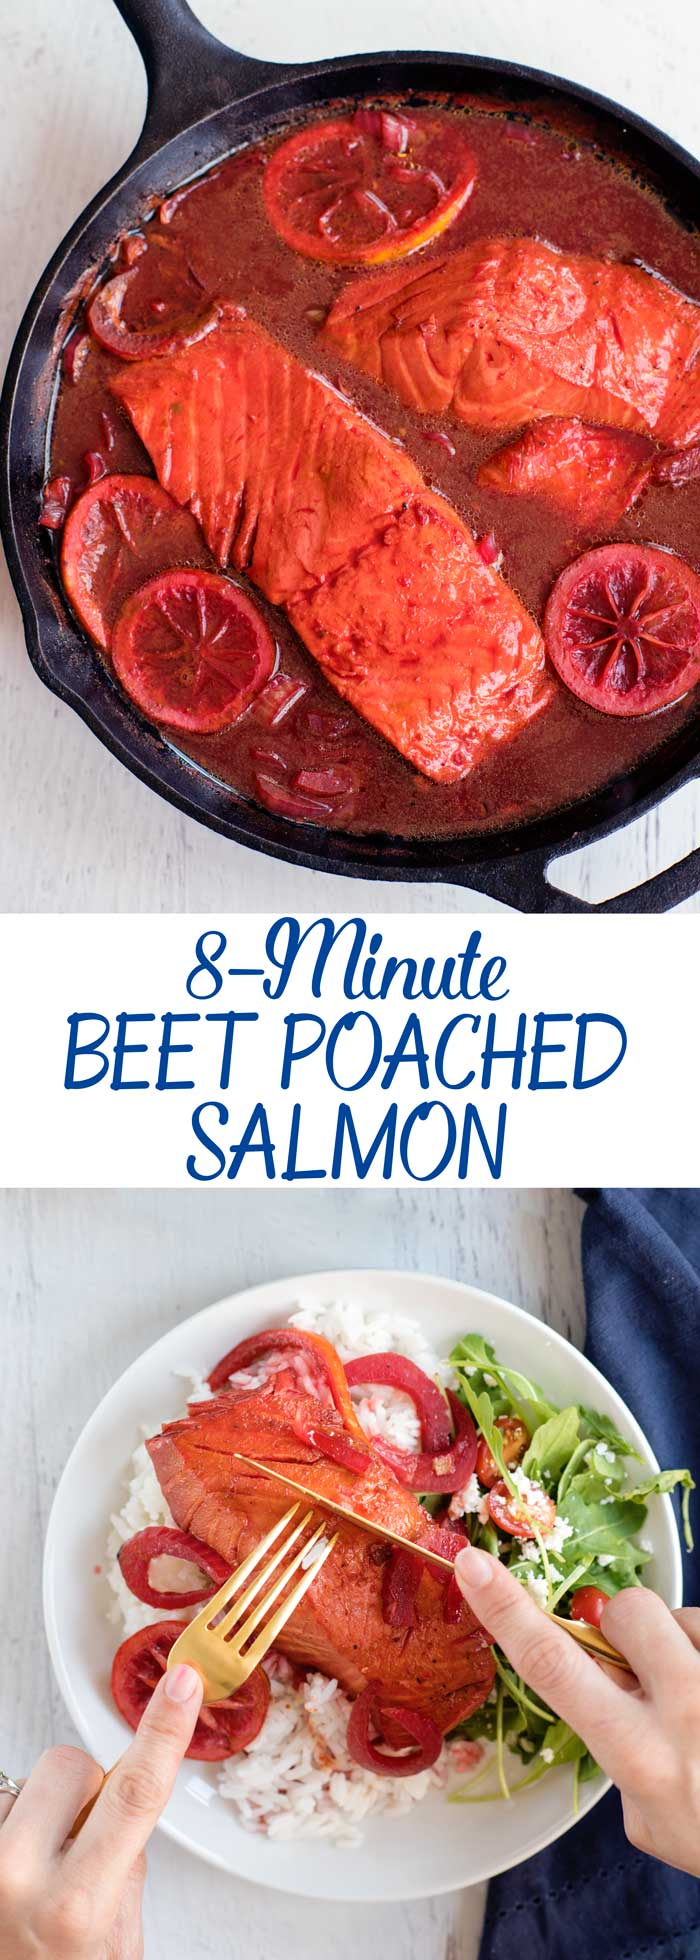 Unique Fish Recipes - Beet Juice Poached Salmon with Rice